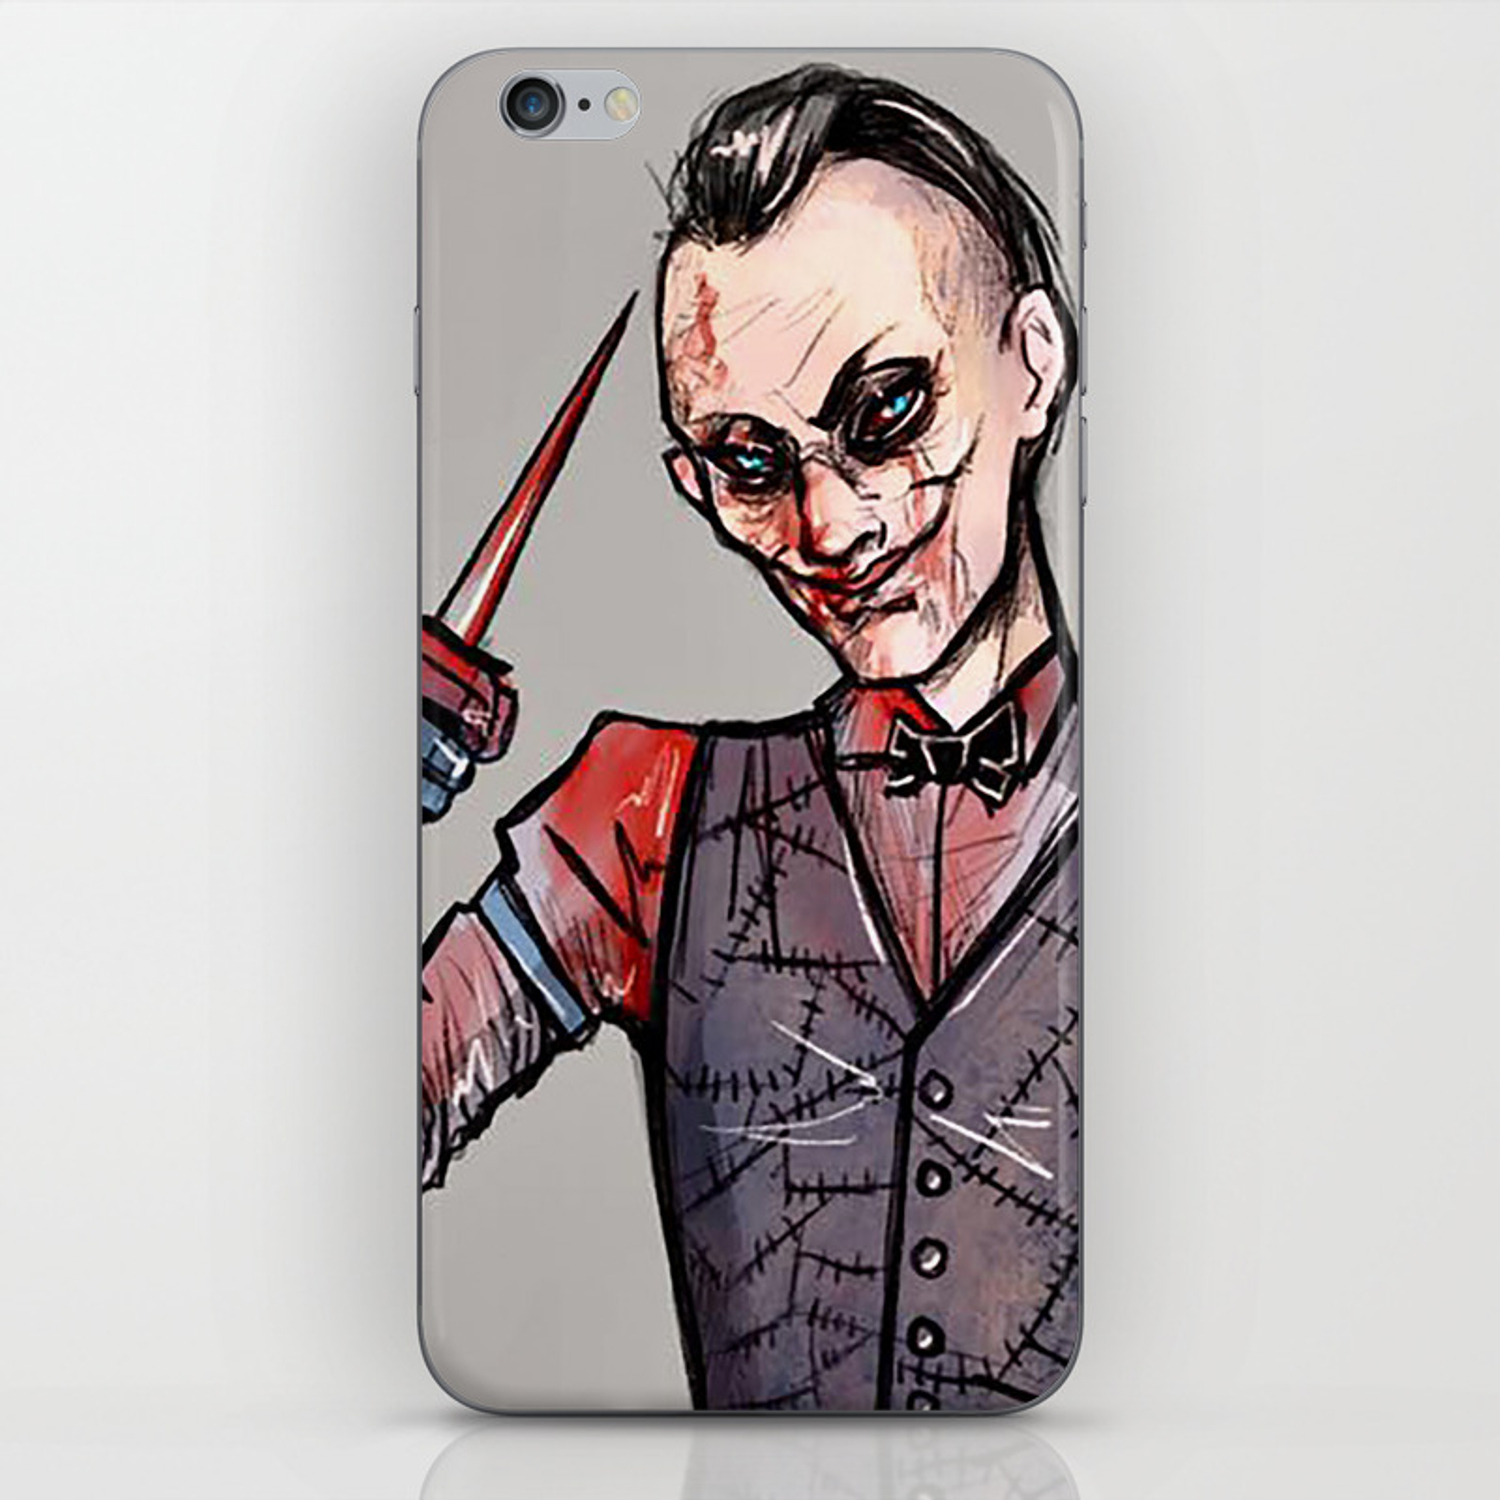 Eddie Gluskin Iphone Skin By Candydemons Society6 The groom has other uses. eddie gluskin iphone skin by candydemons